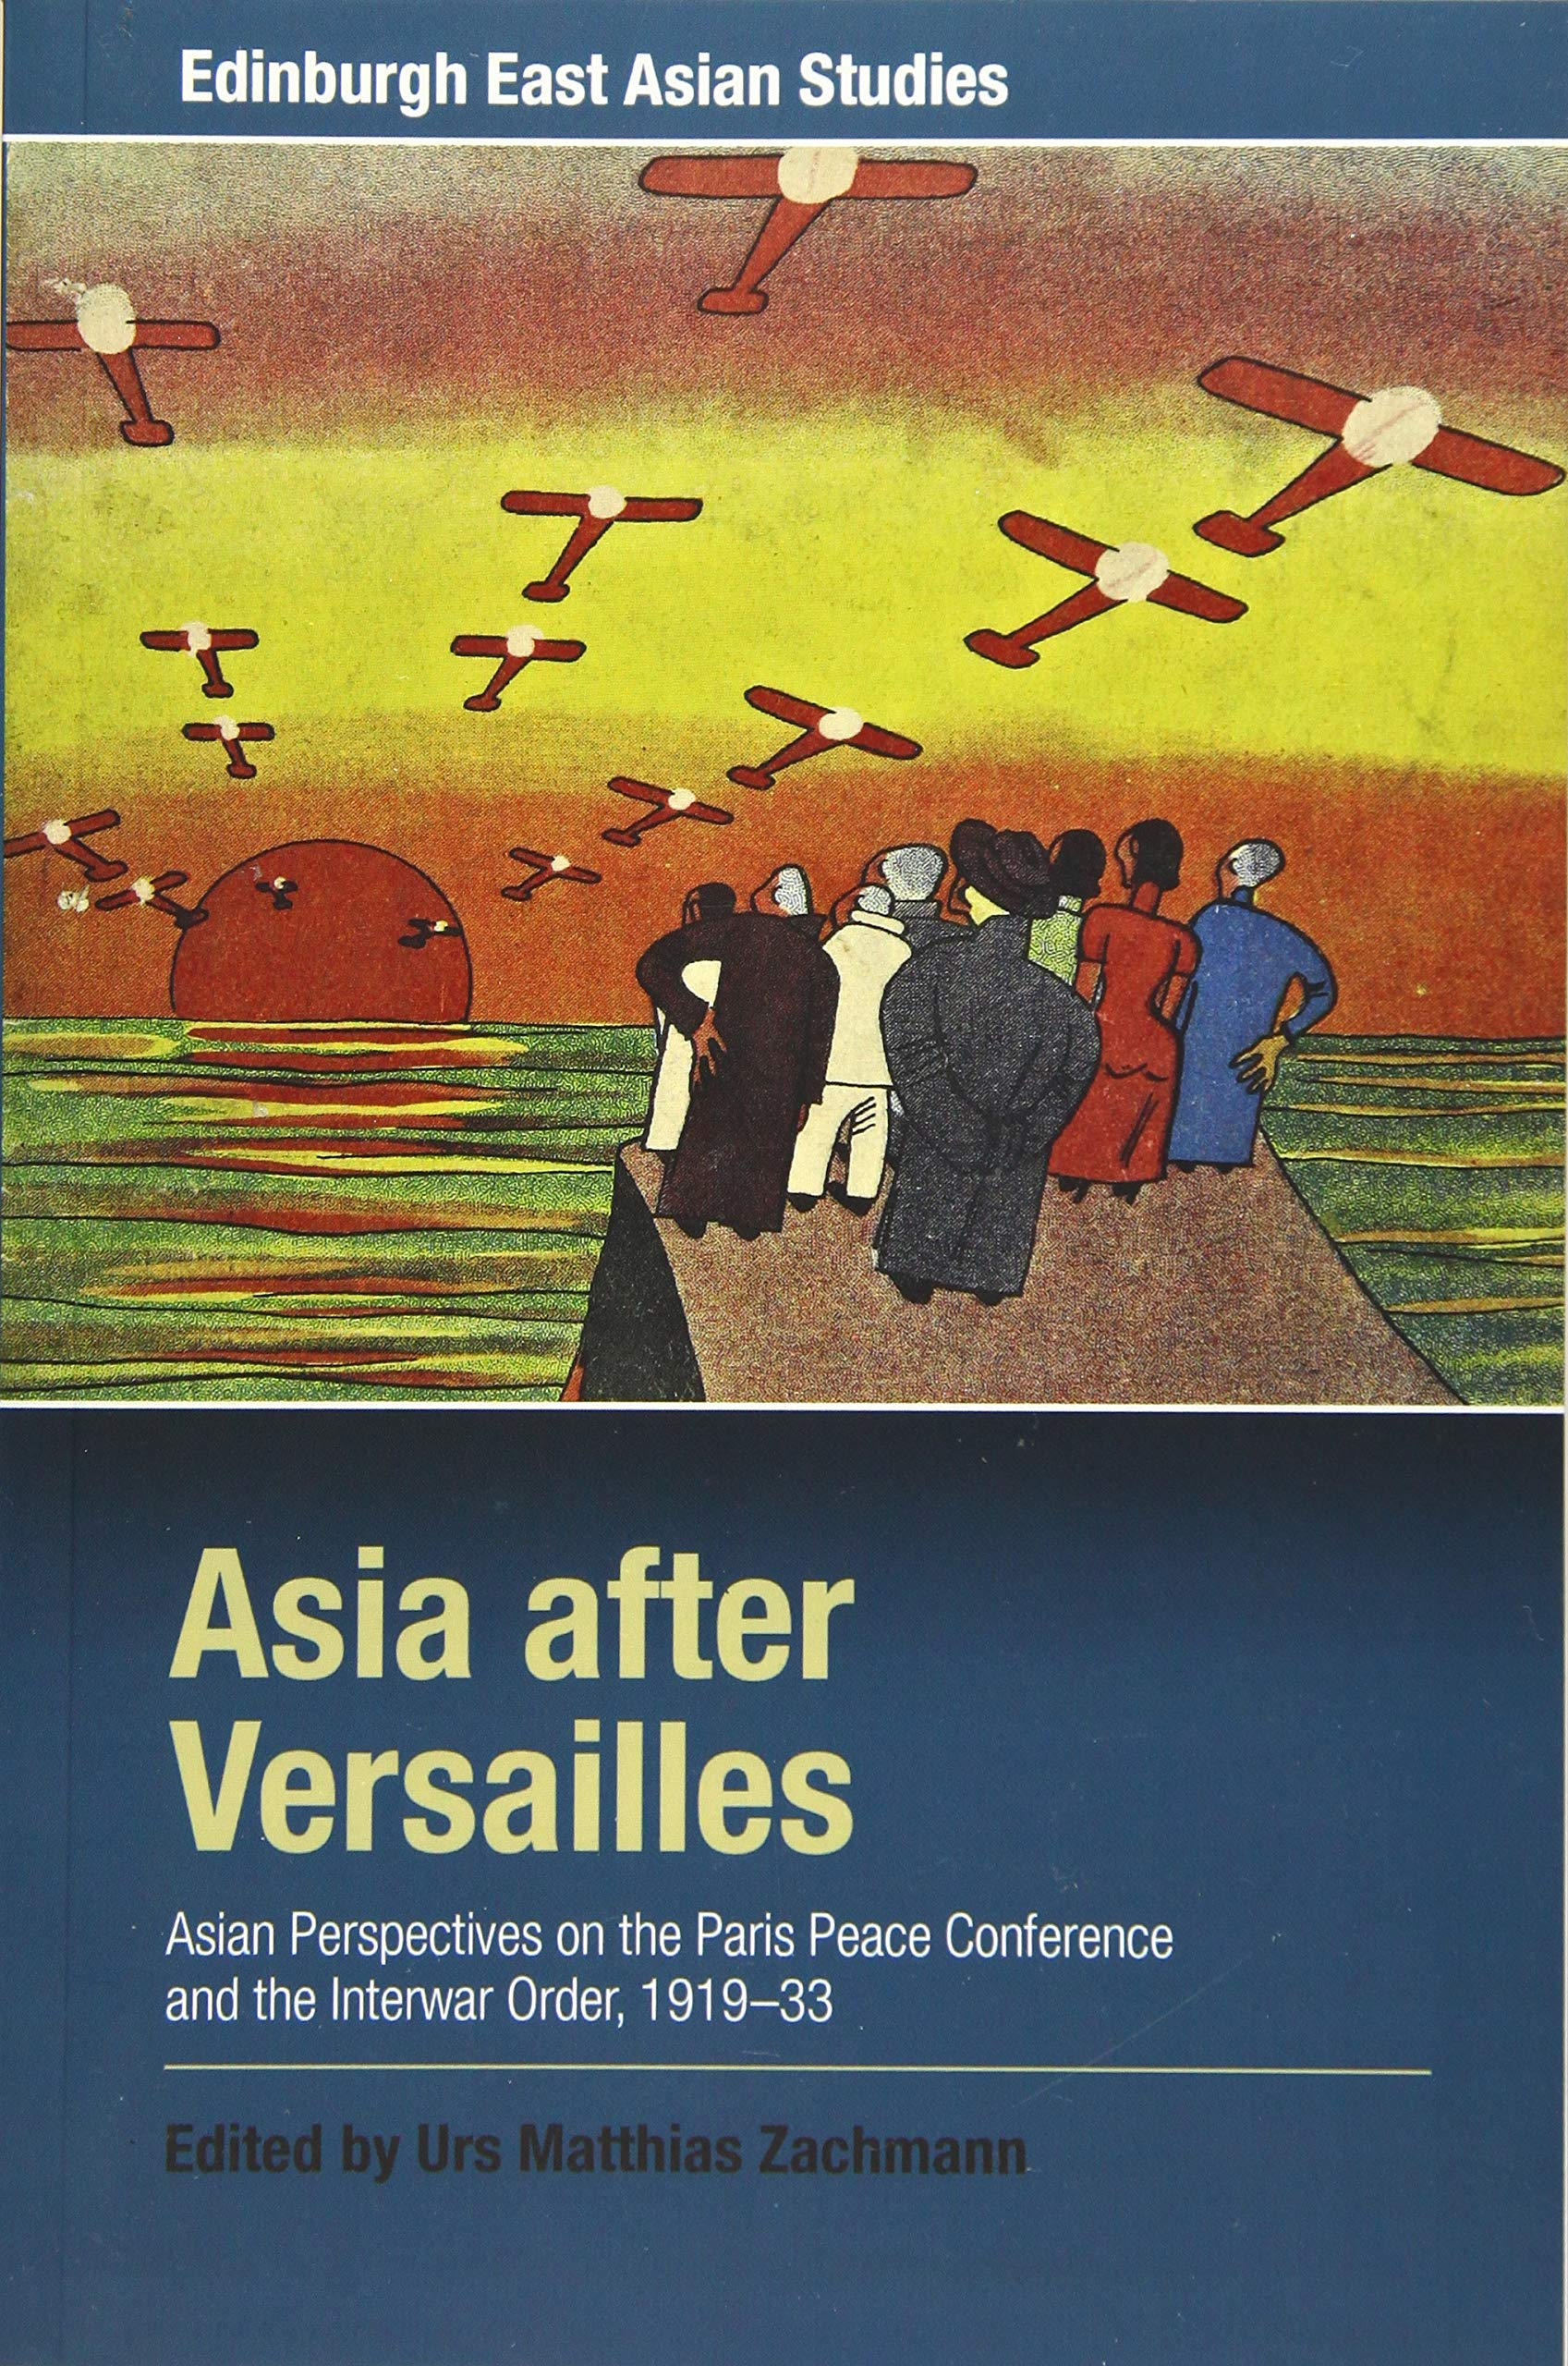 Asia After Versailles  Asian Perspectives On The Paris Peace Conference And The Interwar Order 1919 33  Edinburgh East Asian Studies